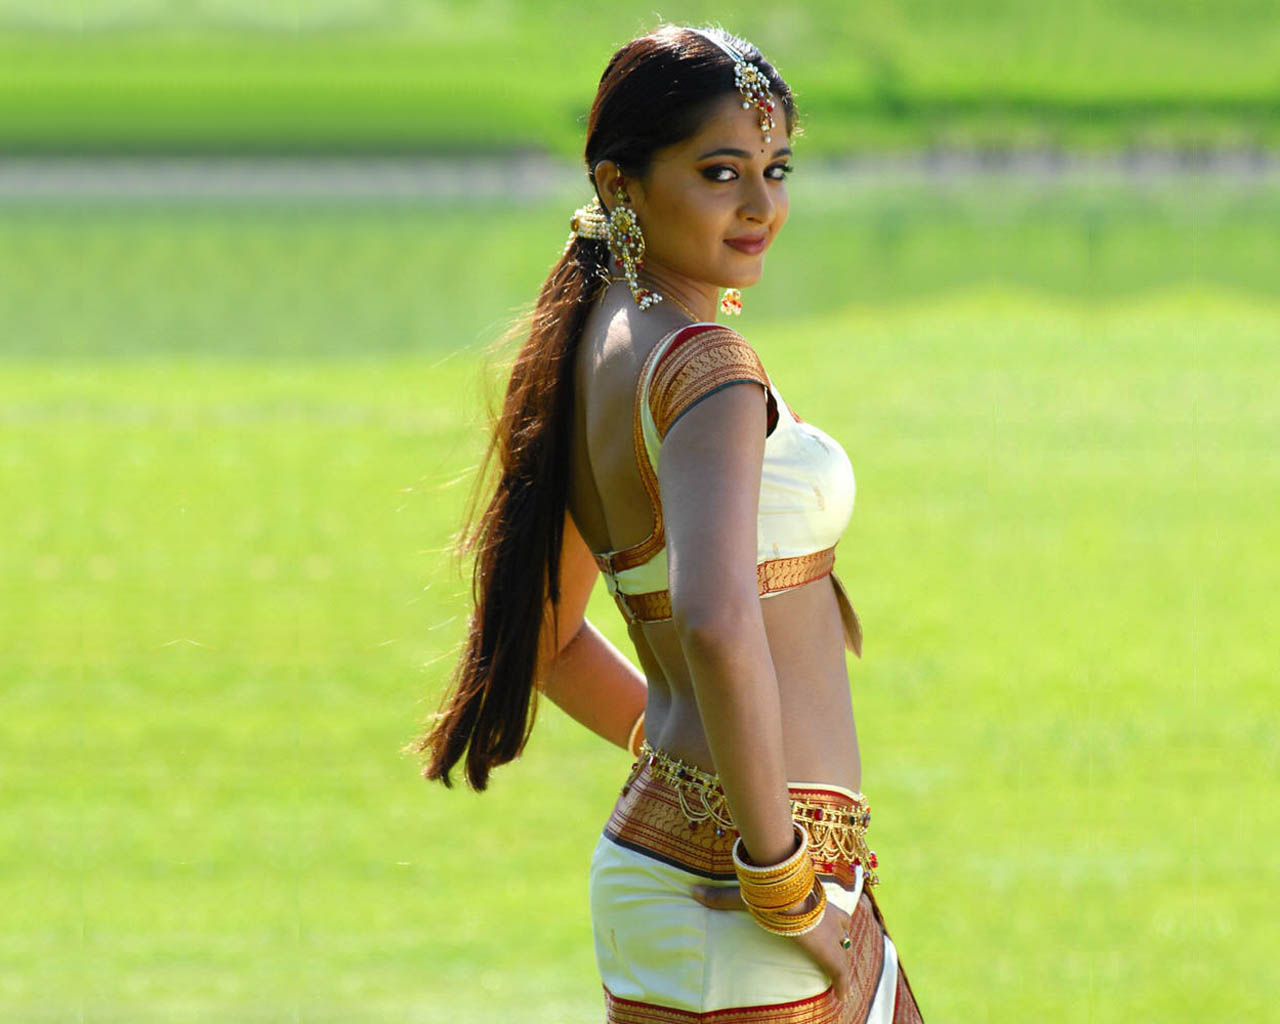 http://2.bp.blogspot.com/_etc1OARoaC4/Snk8f2XzDrI/AAAAAAAAFAk/vt8Okhu33mU/s1600/anushka-actress-backless-58.jpg